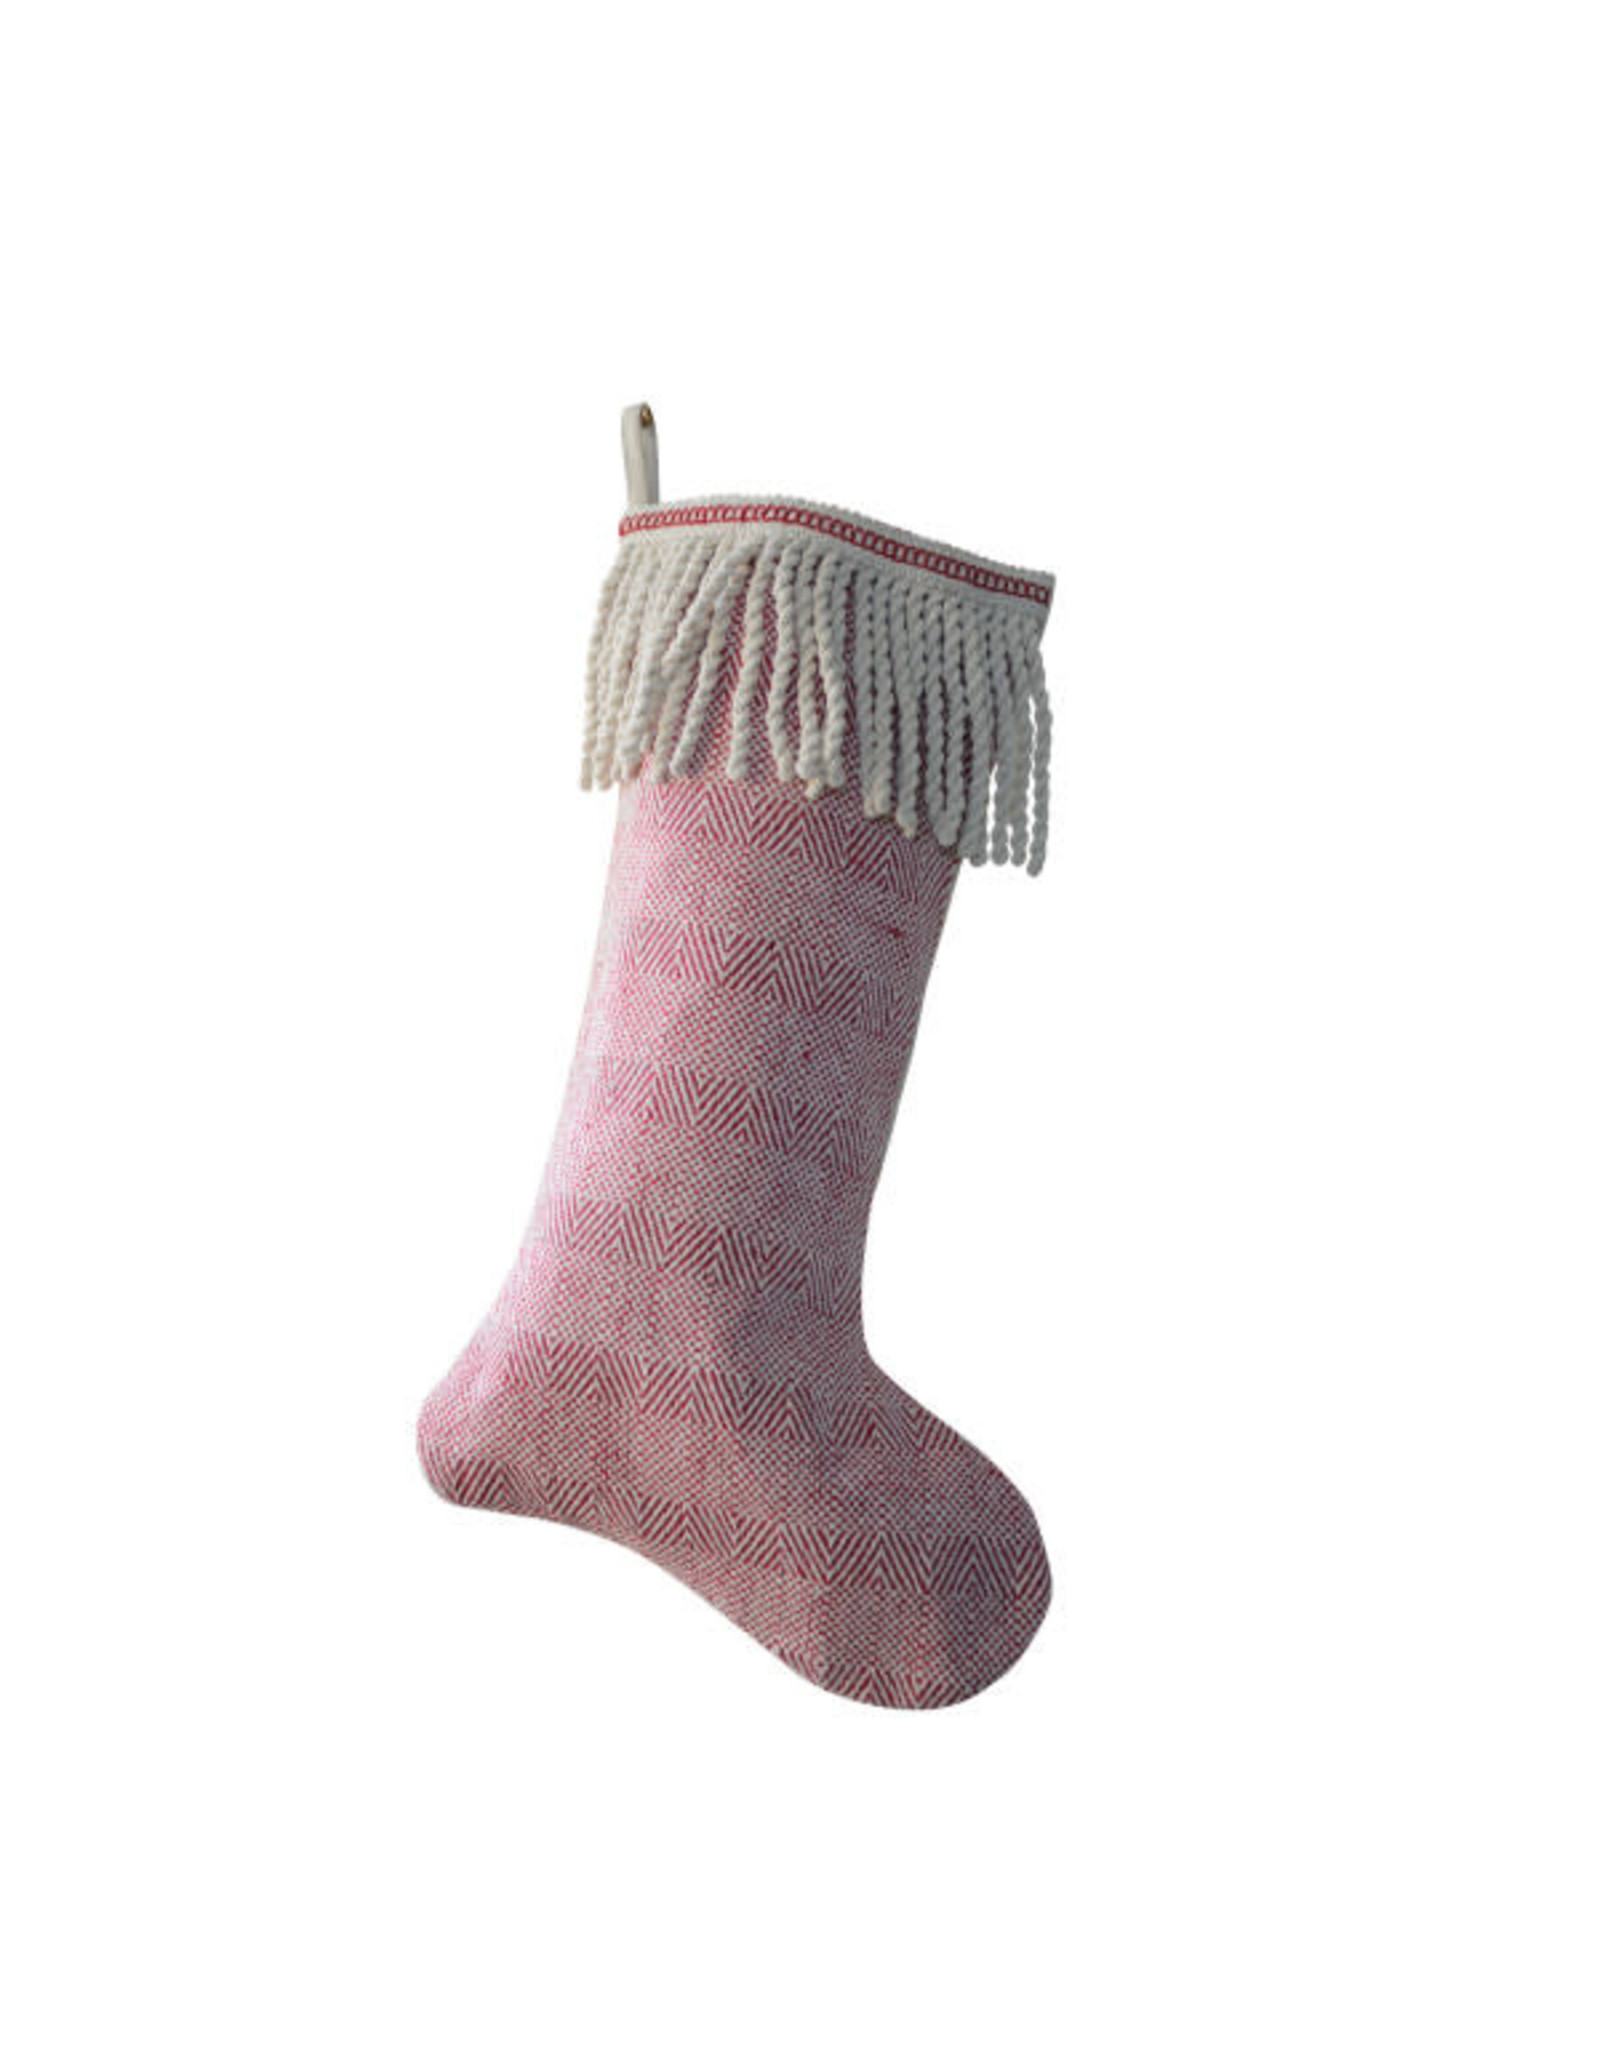 "20"" Woven Cotton Stocking w Bullion Fringe Cuff"